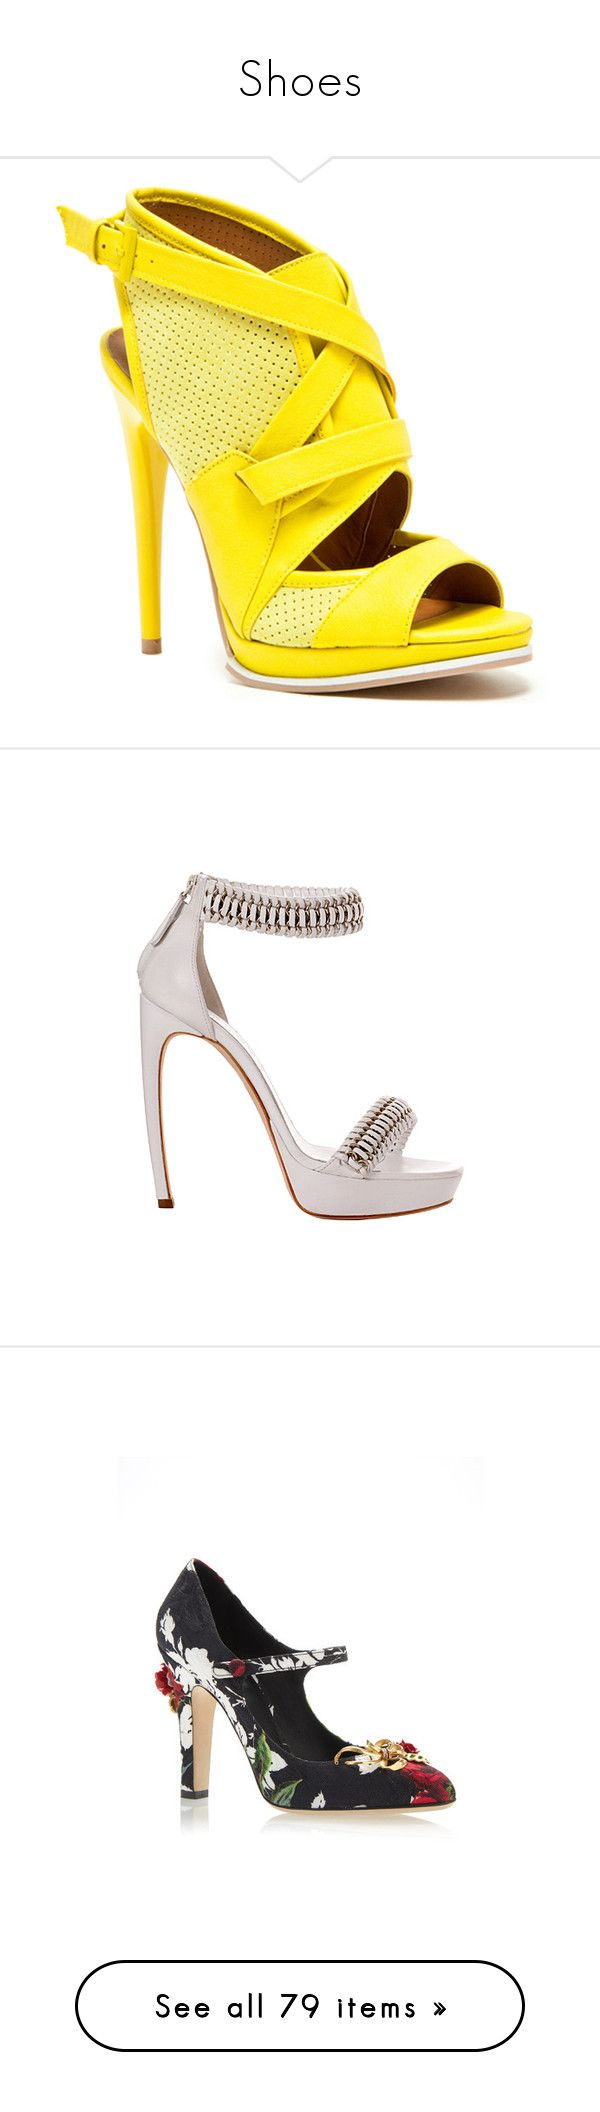 """""""Shoes"""" by bliznec ❤ liked on Polyvore featuring shoes, sandals, heels, yellow, strappy sandals, heeled sandals, strap heel sandals, strap shoes, strappy heeled sandals and alexander mcqueen"""